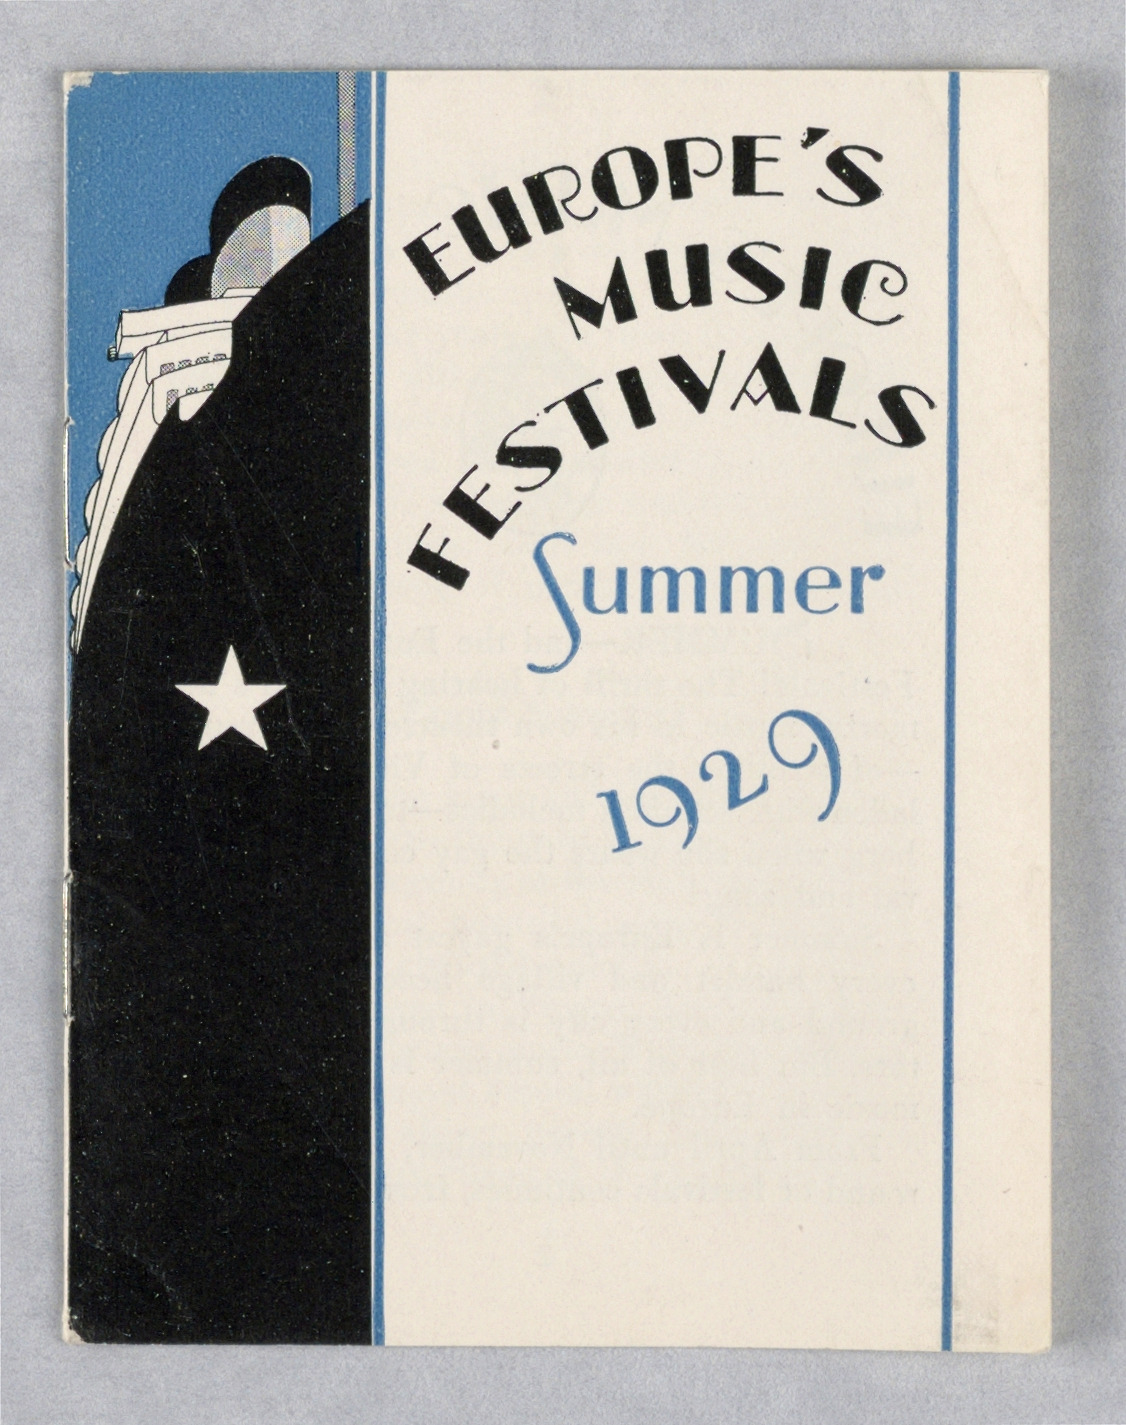 images for International Mercantile Marine Co./Europe's Music Festivals/Summer 1929